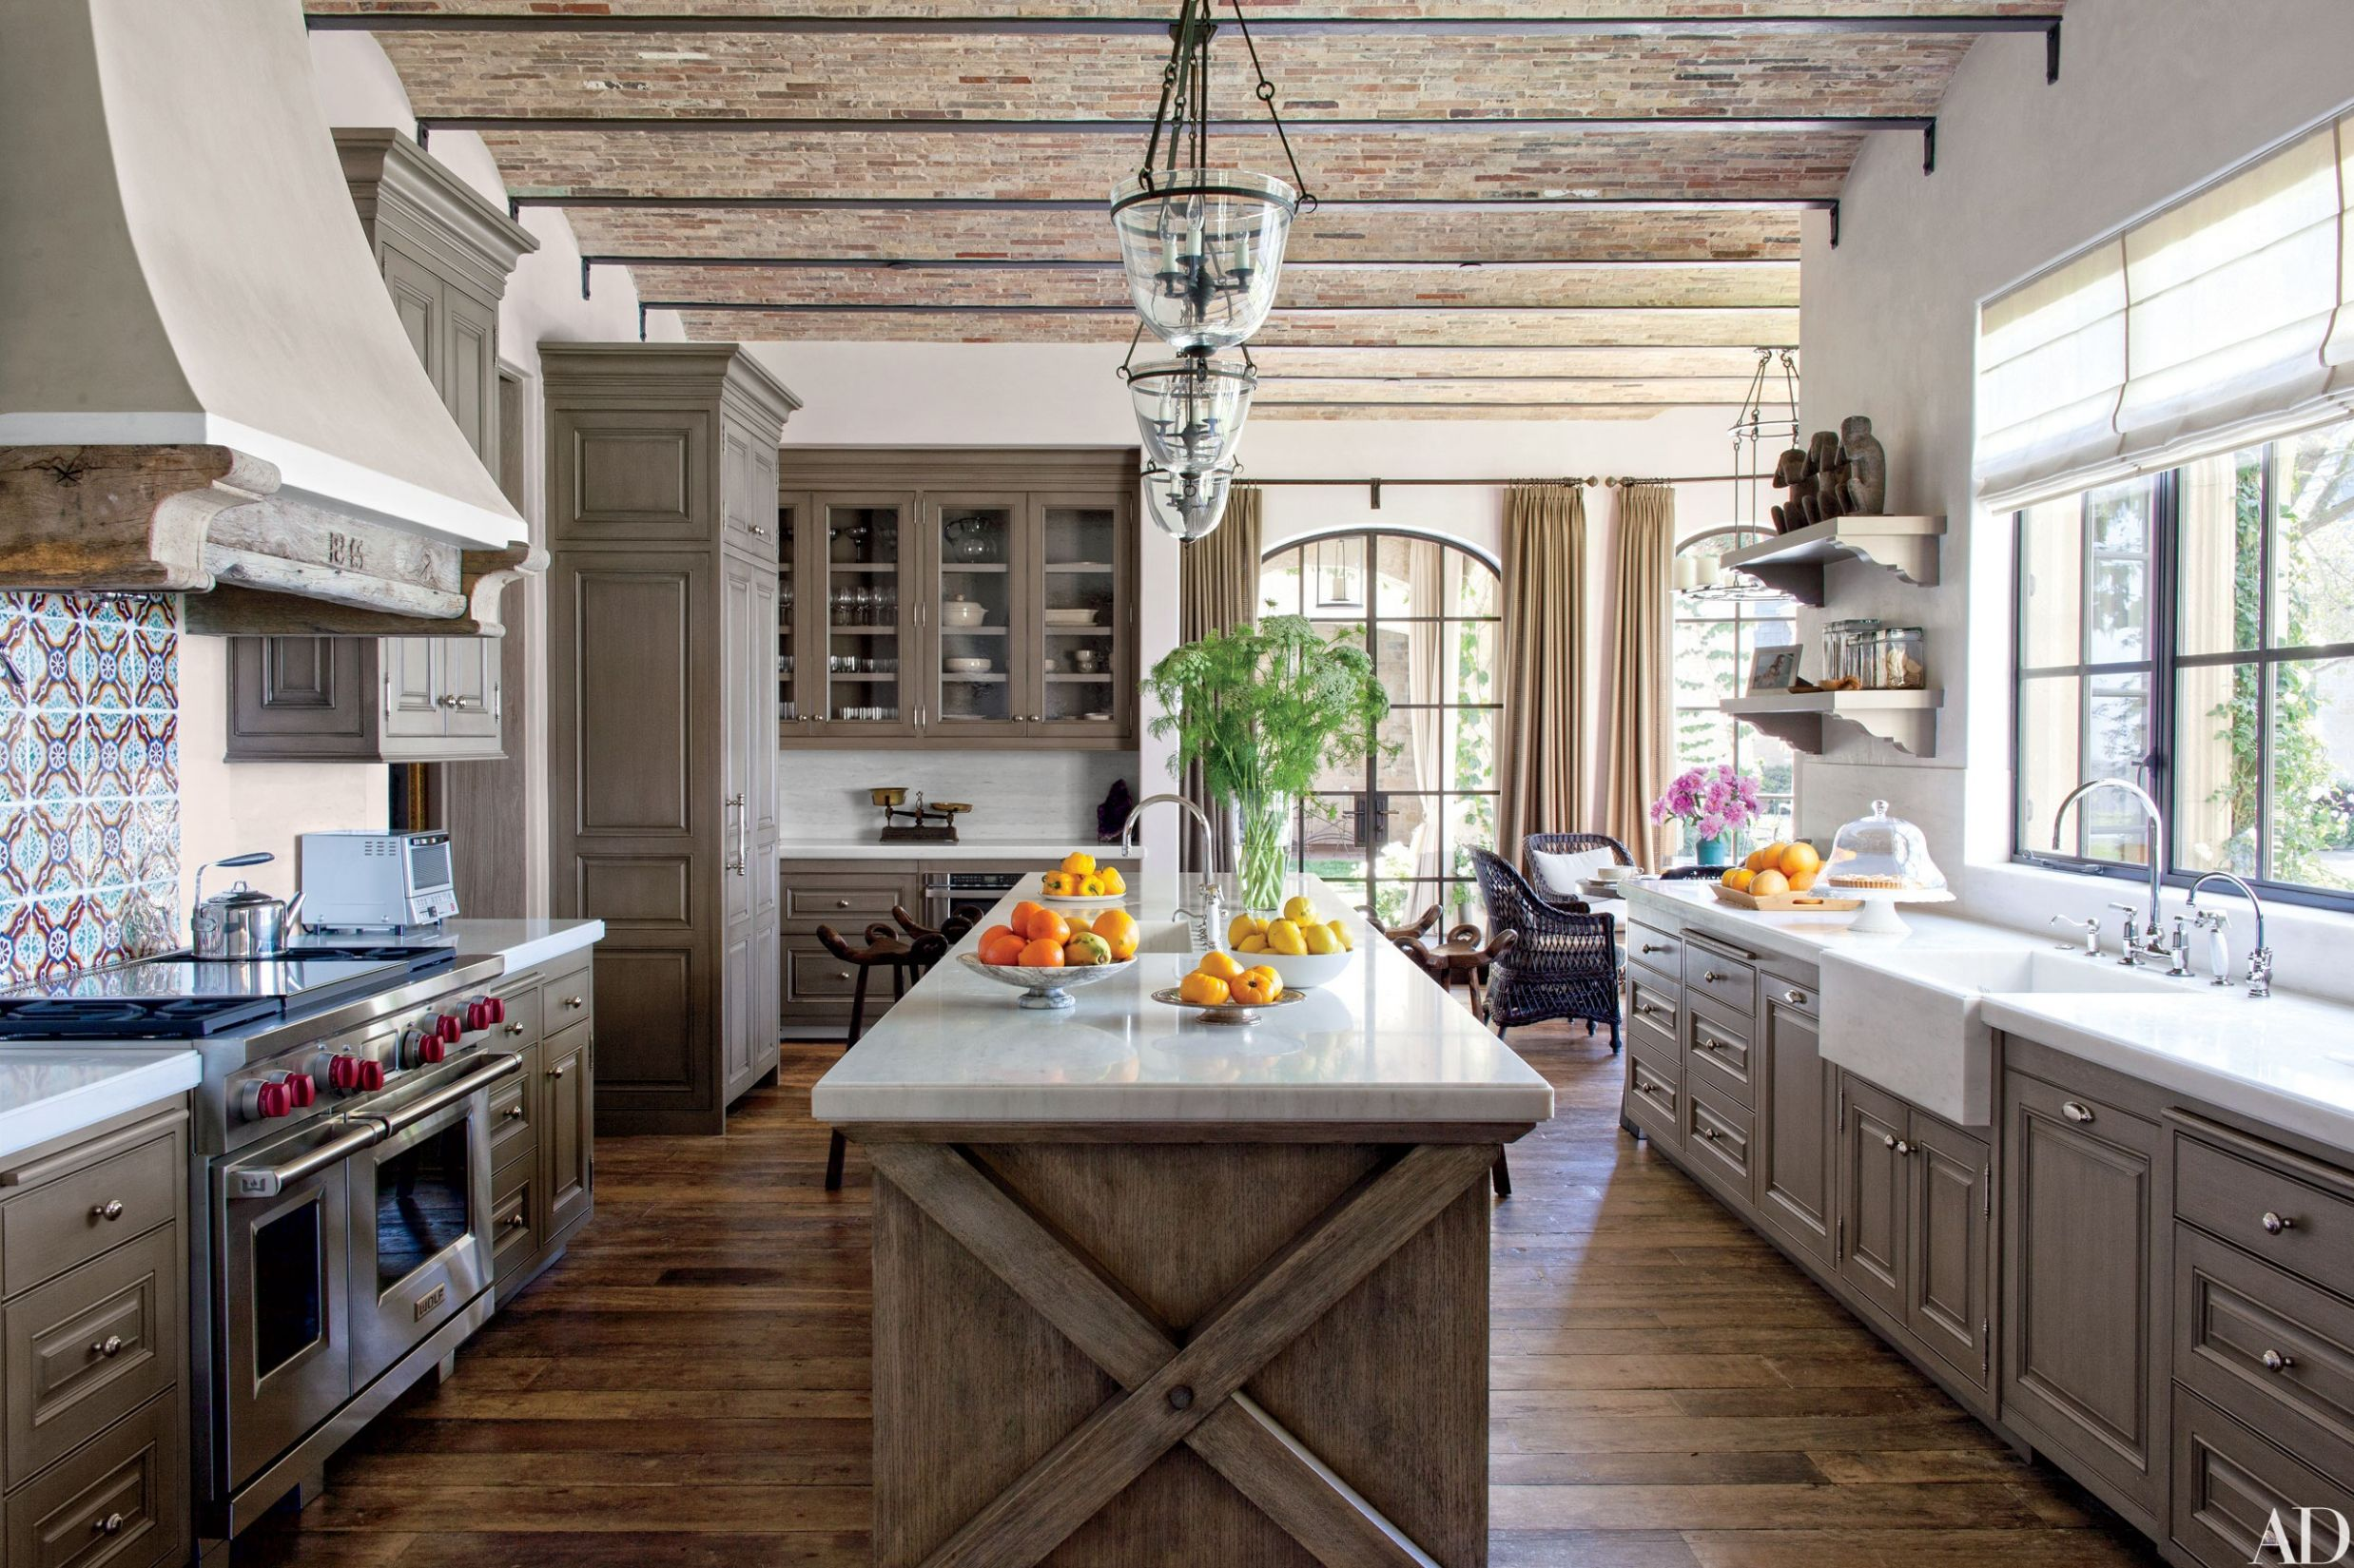 8 Stunning Kitchen Island Ideas | Architectural Digest - kitchen ideas island